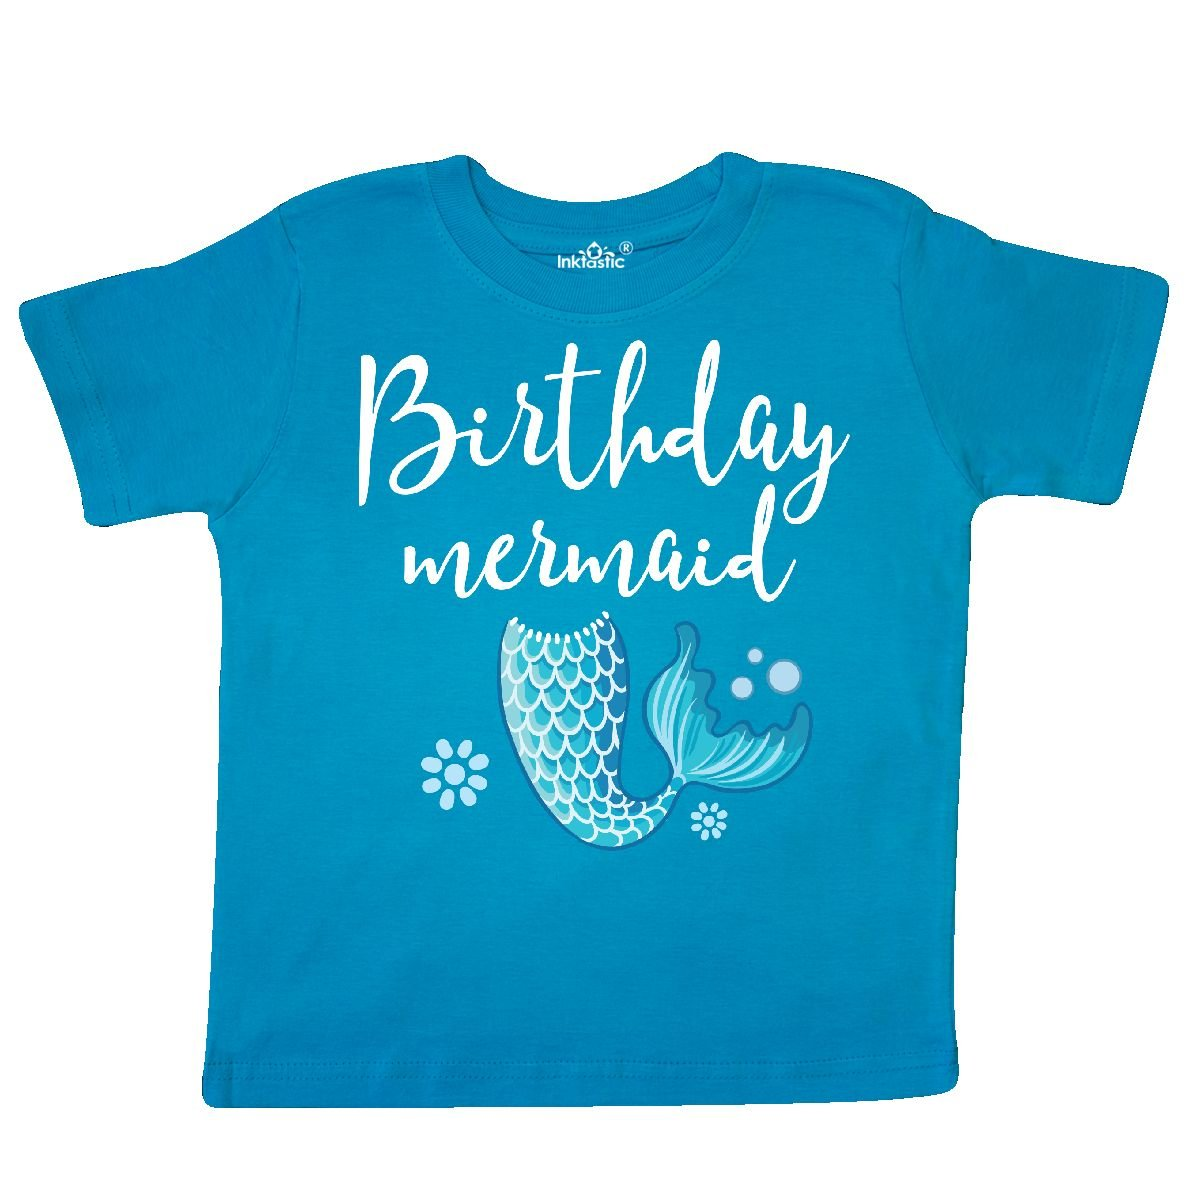 Birthday Mermaid Girls Party Gift Toddler T Shirt 2c572 14 181618 164 Novelty More Inktastic